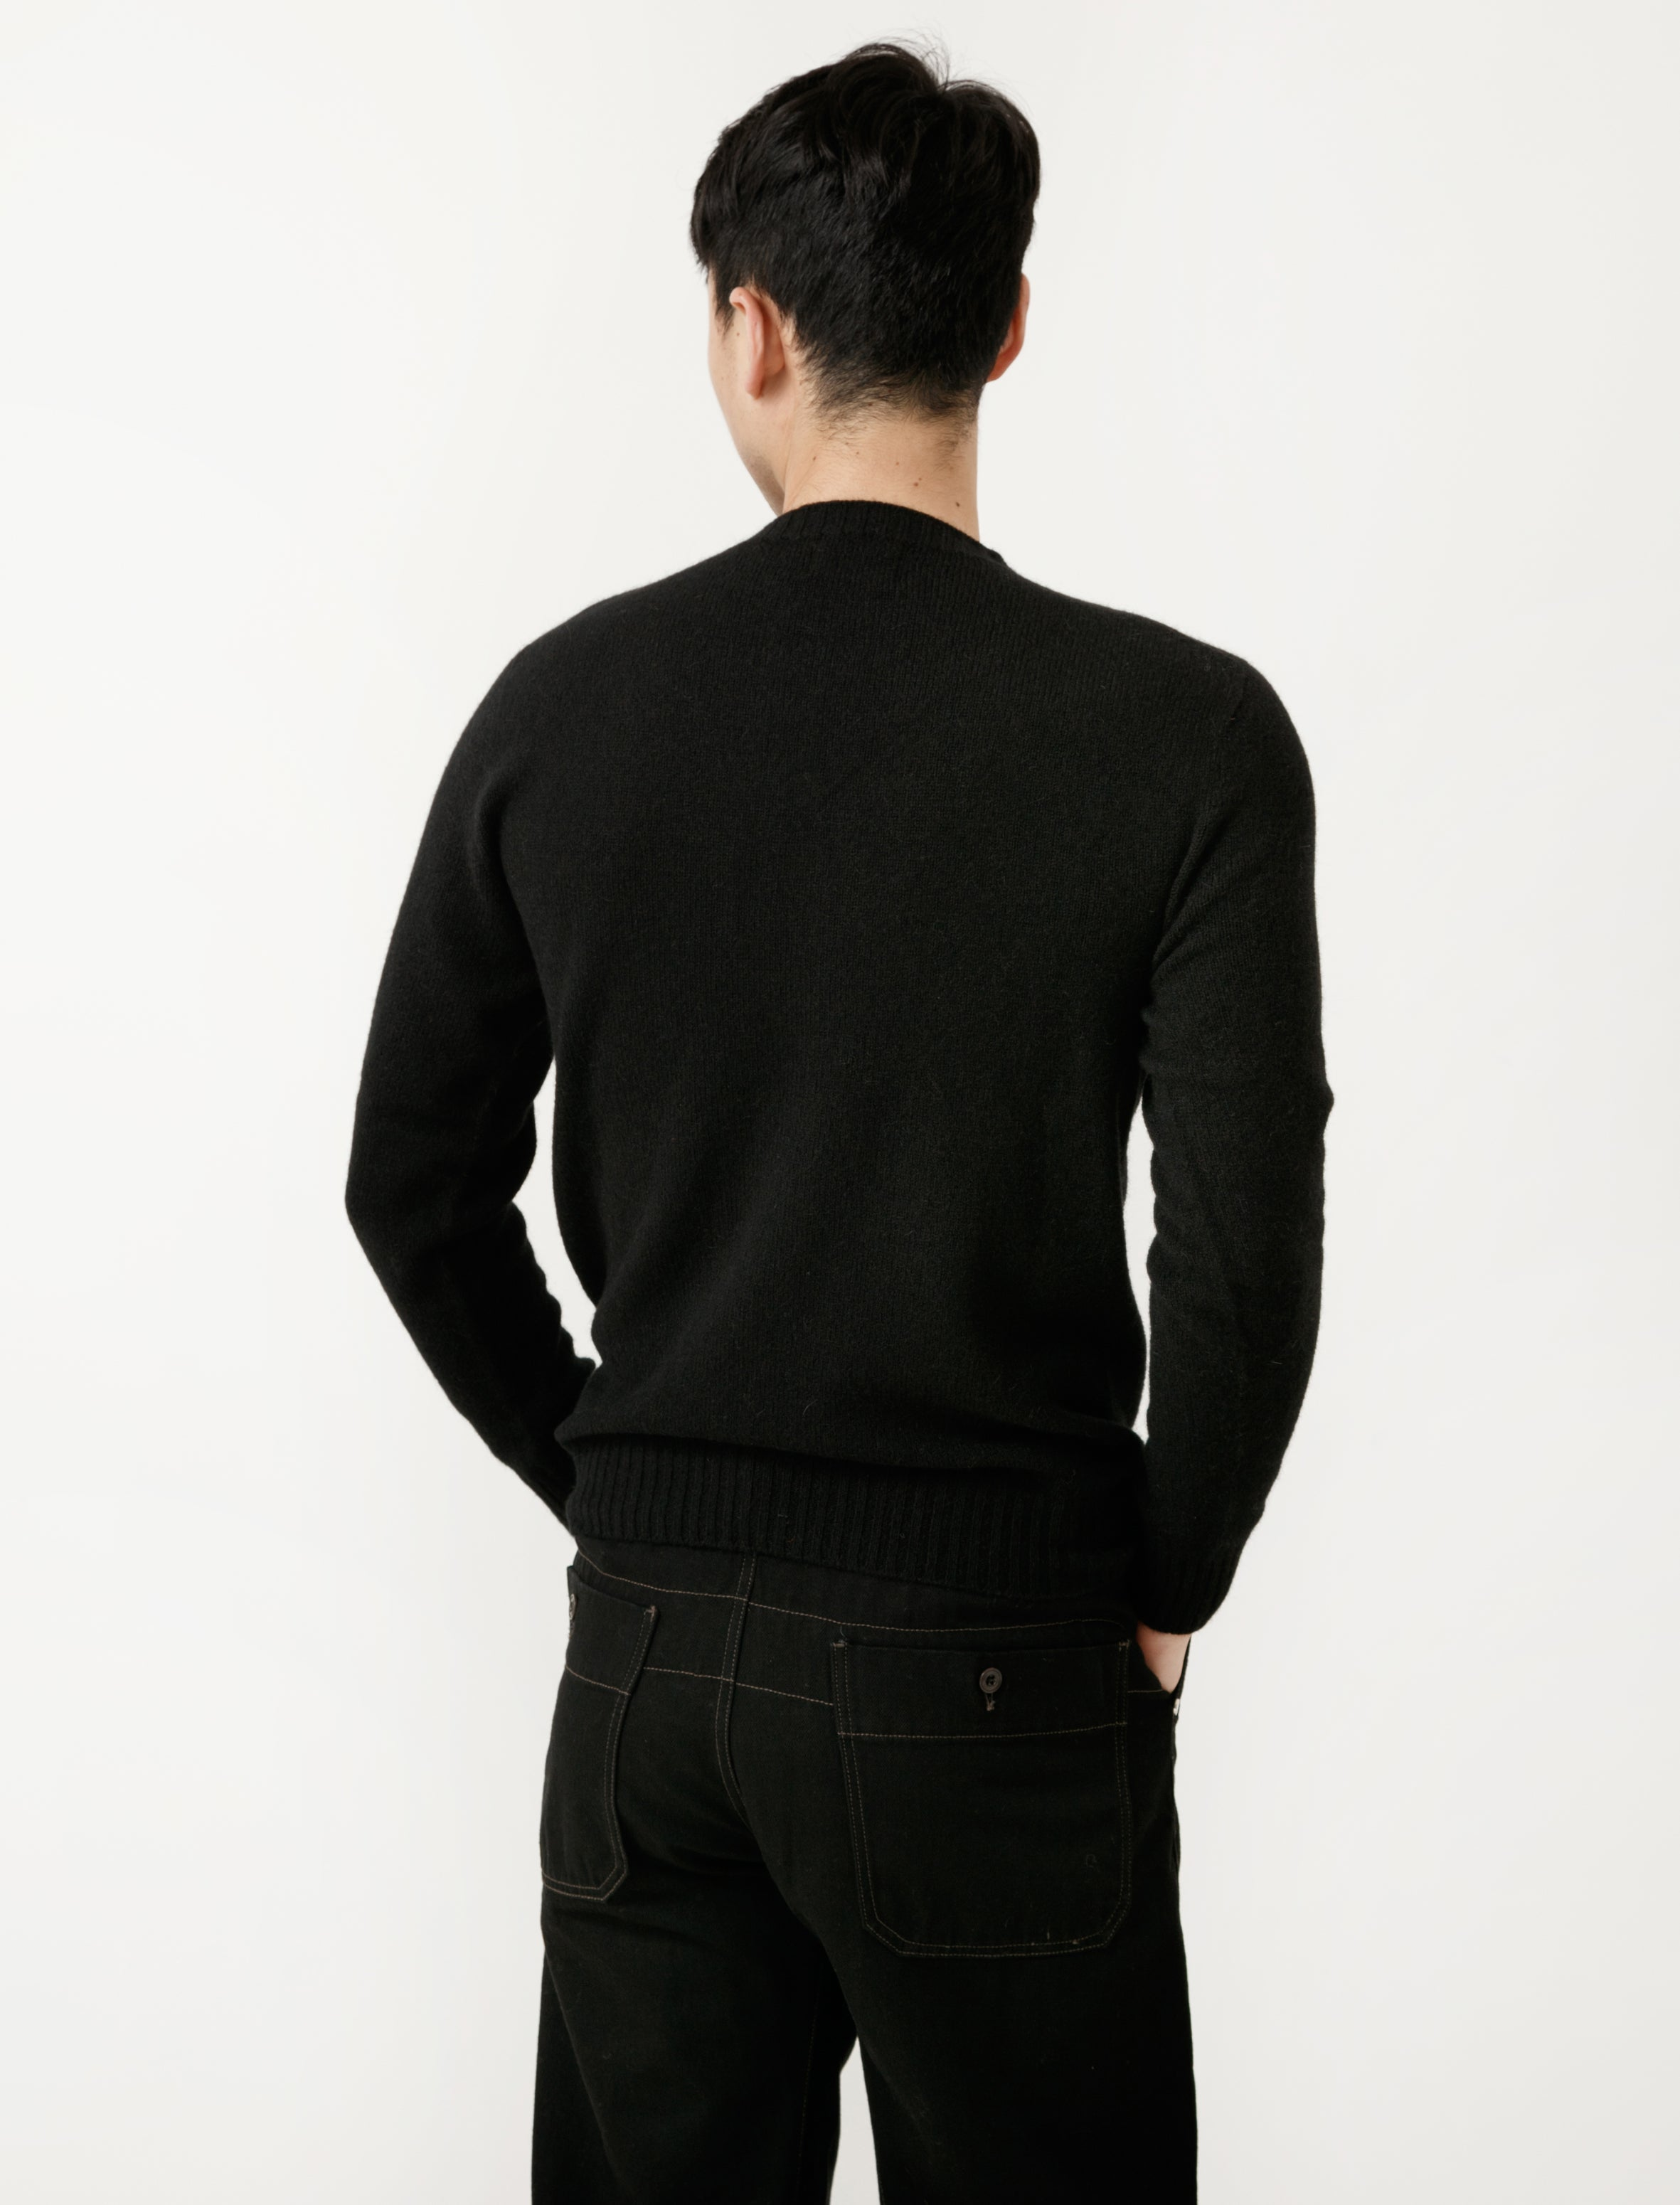 Neighbour Superfine Wool Sweater Nero